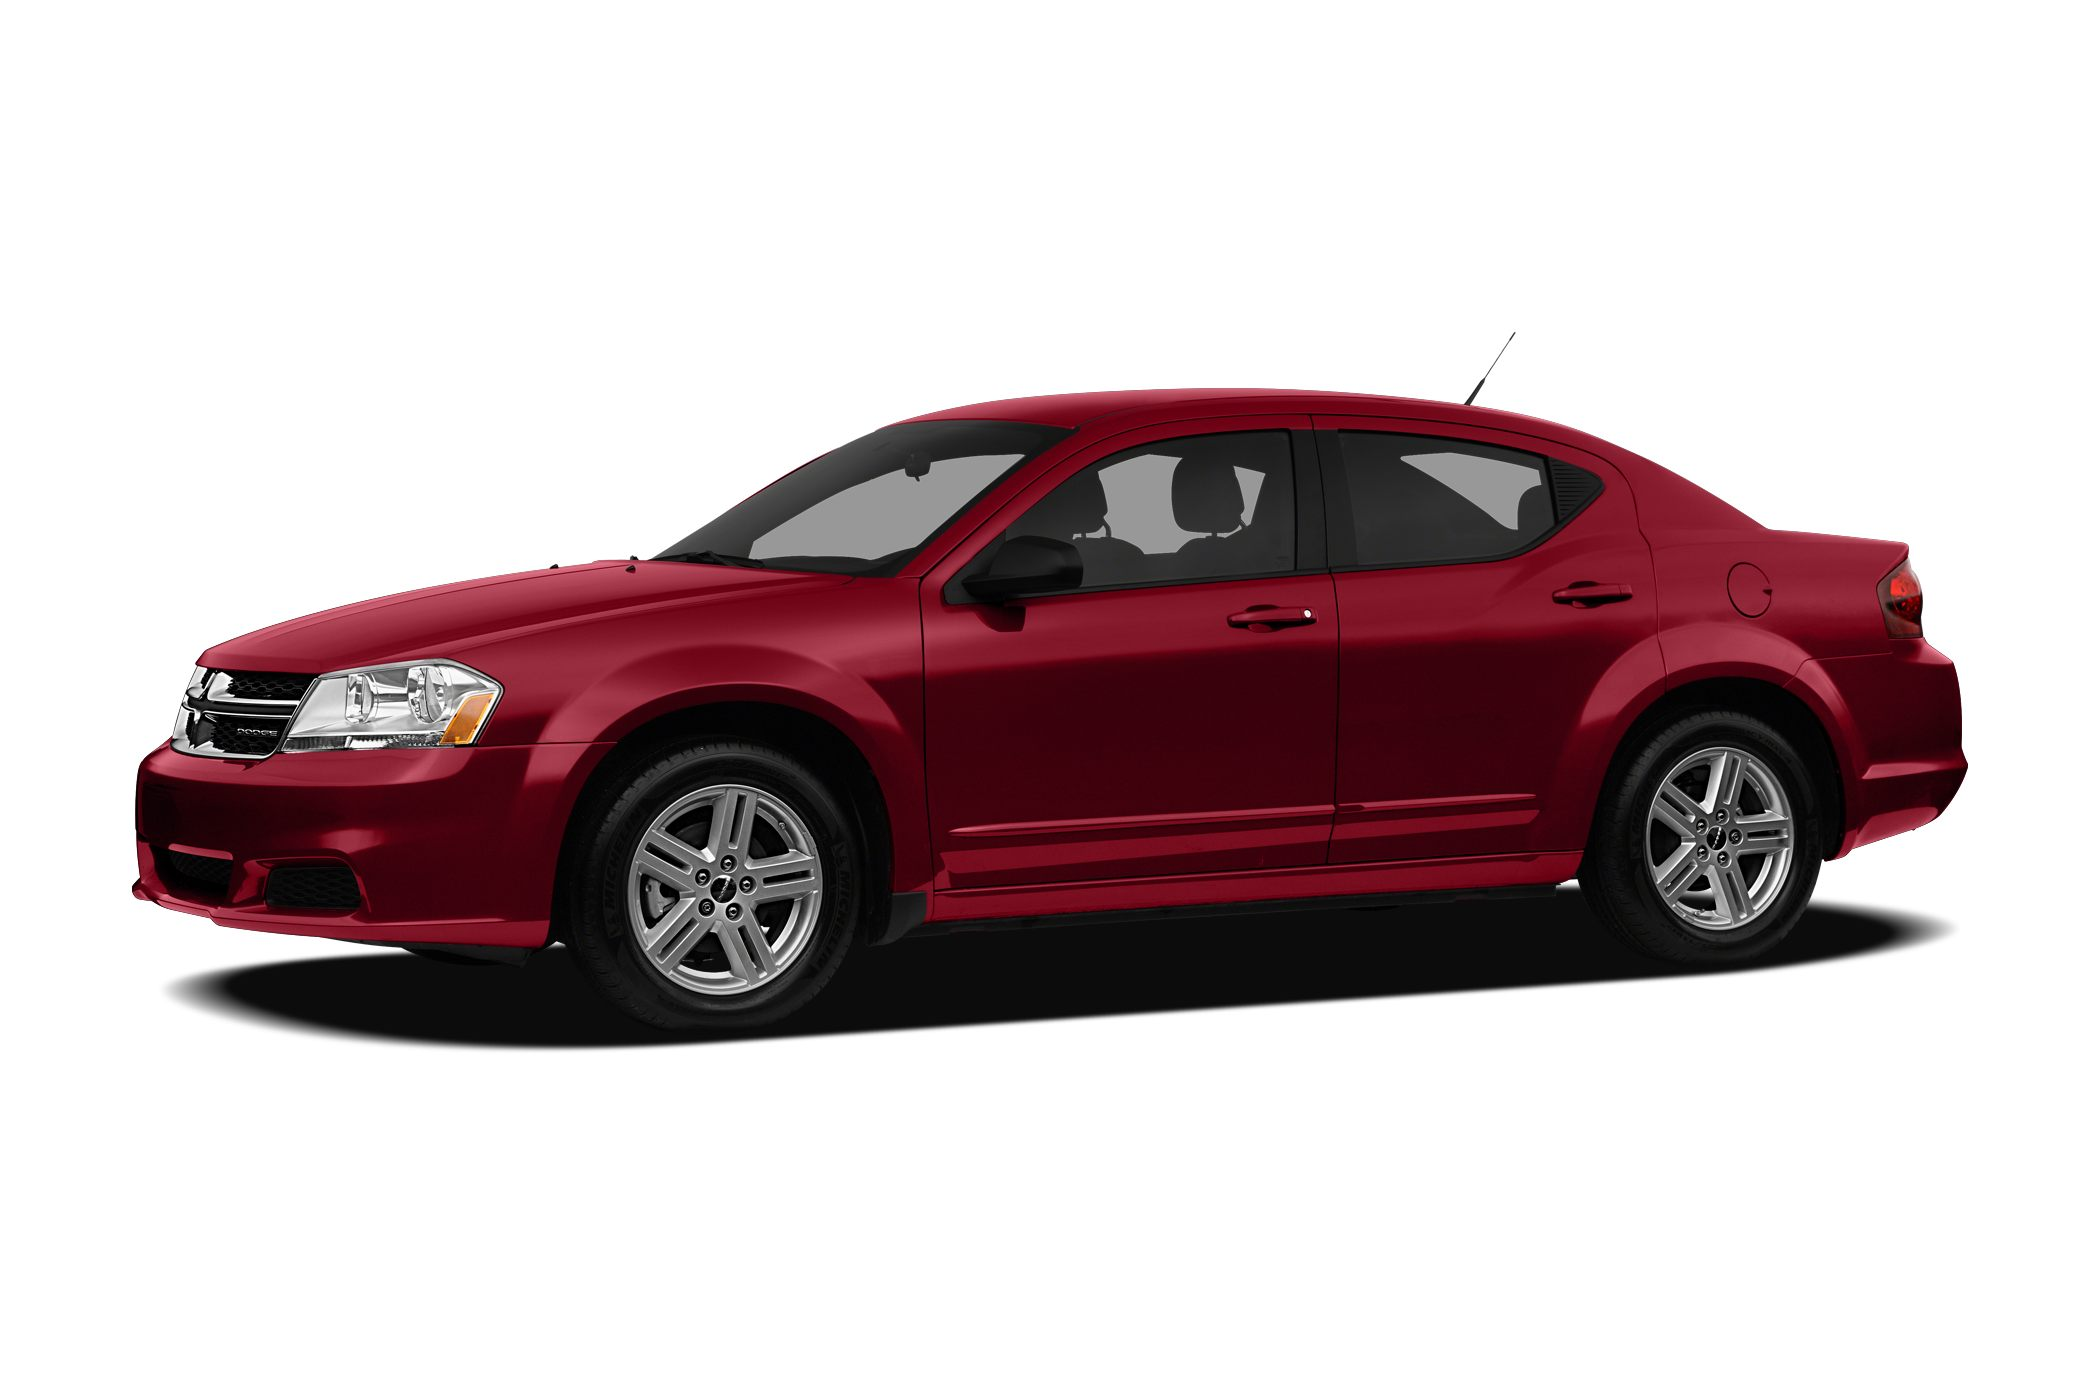 2012 Dodge Avenger SXT EPA 31 MPG Hwy20 MPG City BRAND NEW VEHICLE Dodge Certified CARFAX 1-O